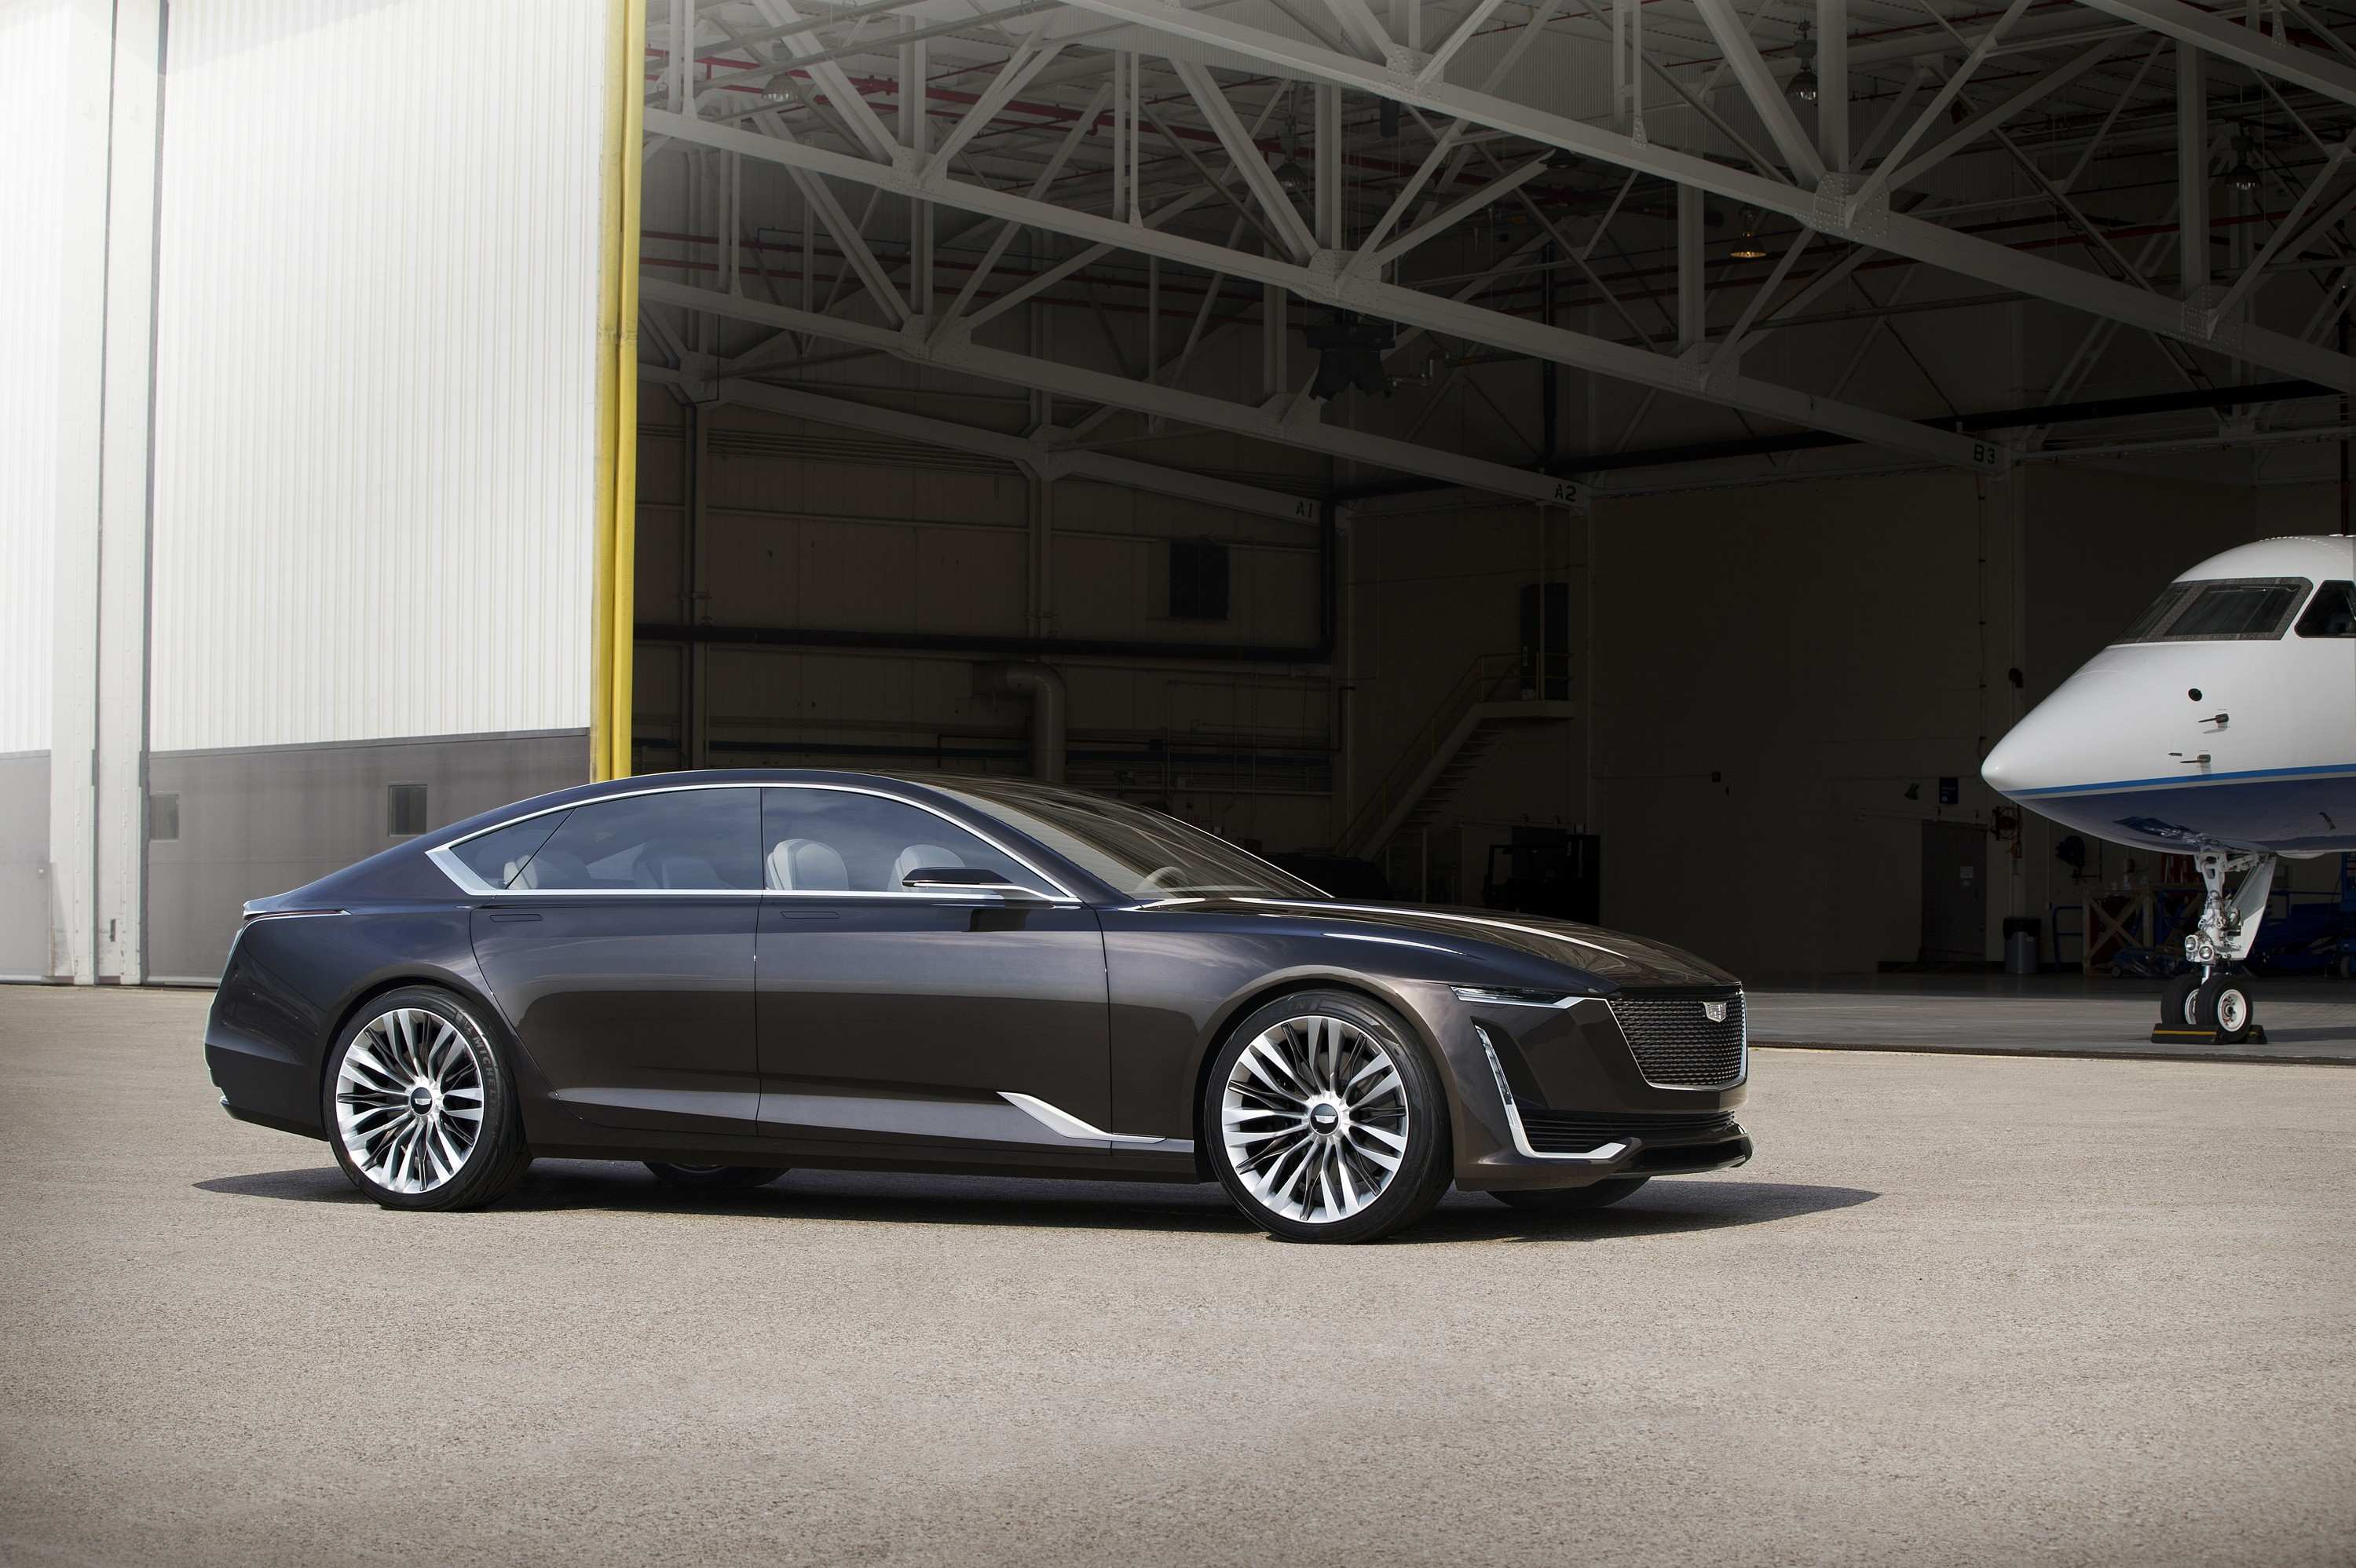 23 Concept of 2020 Cadillac ELR History with 2020 Cadillac ELR